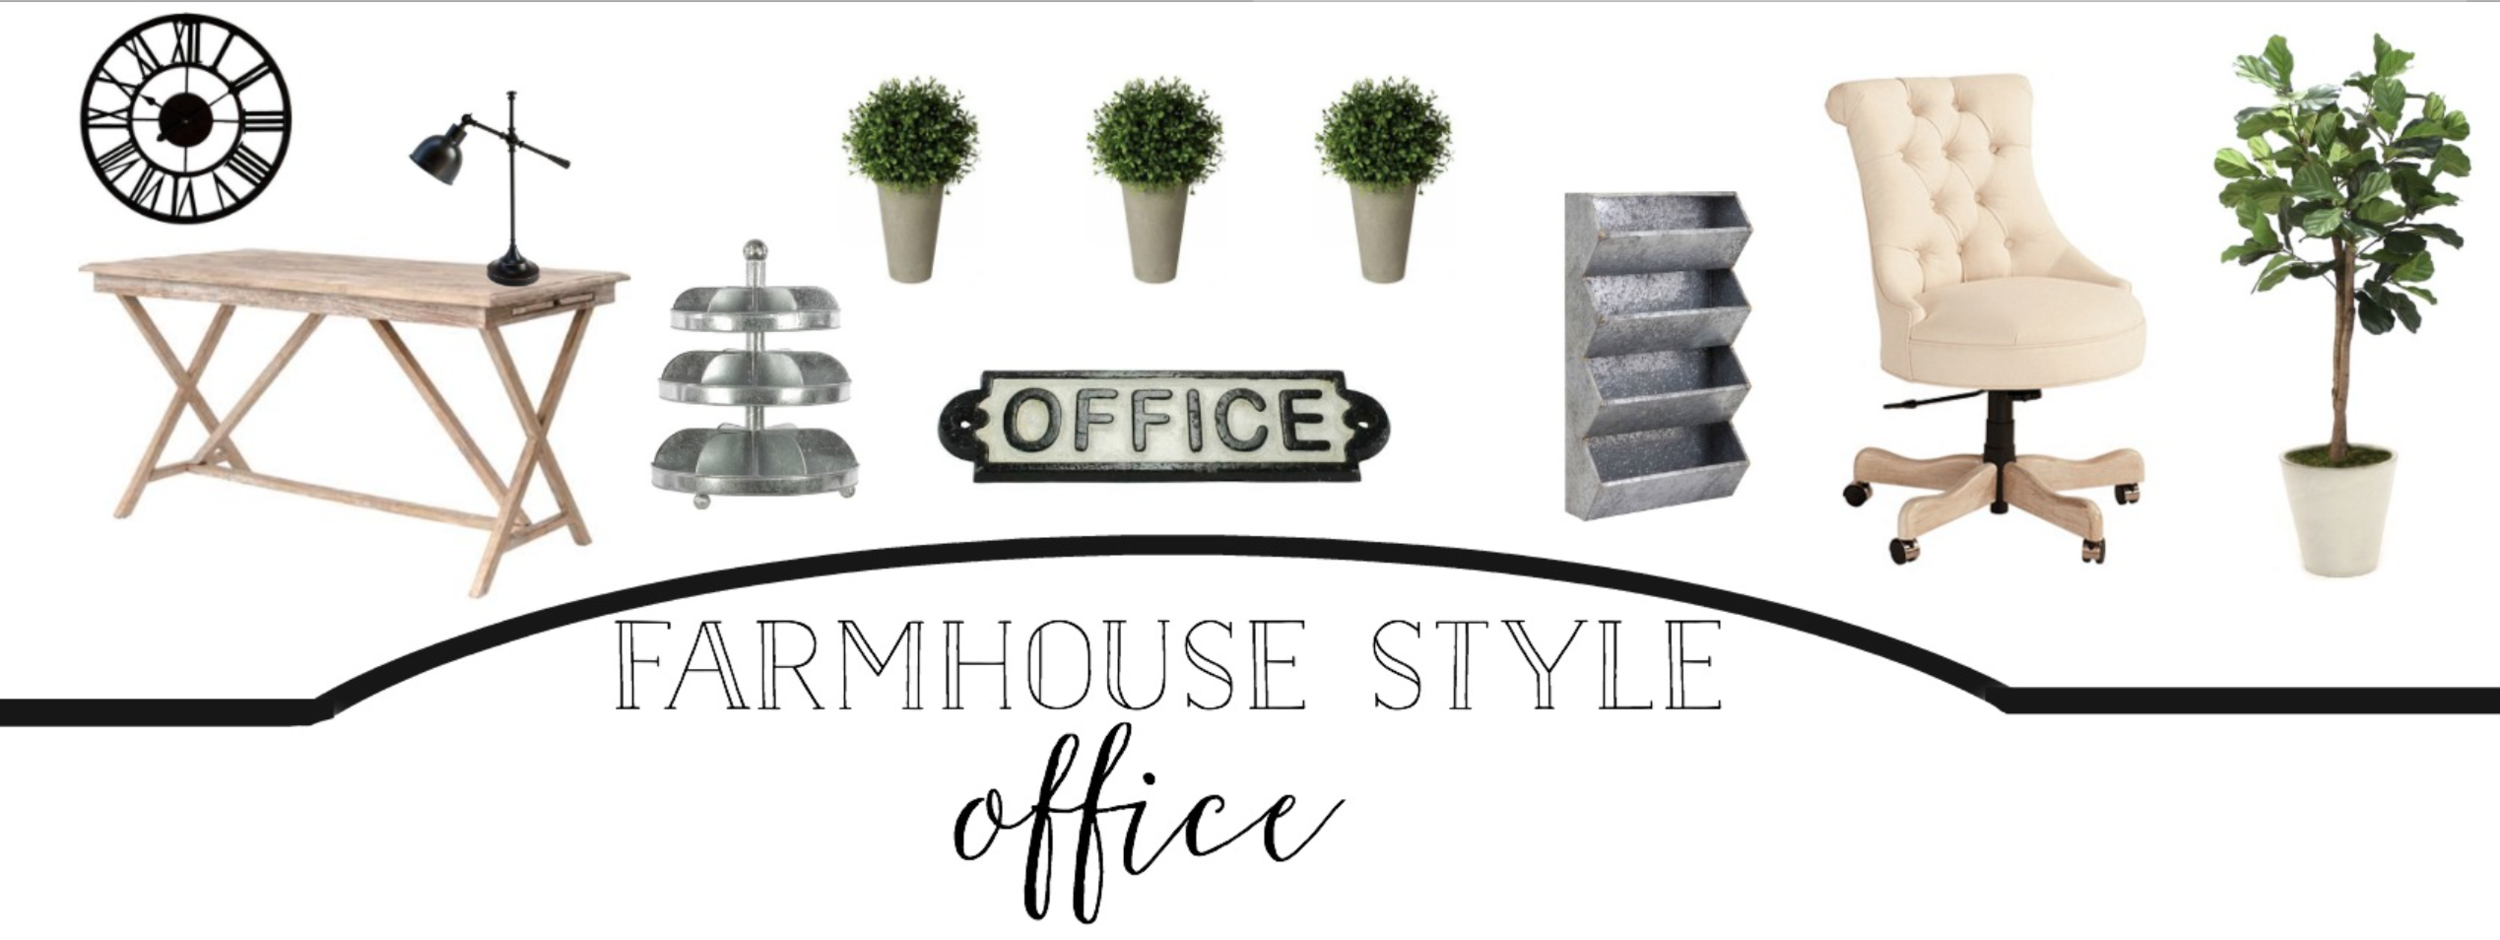 Farmhouse Style Office- Plum Pretty Decor and Design